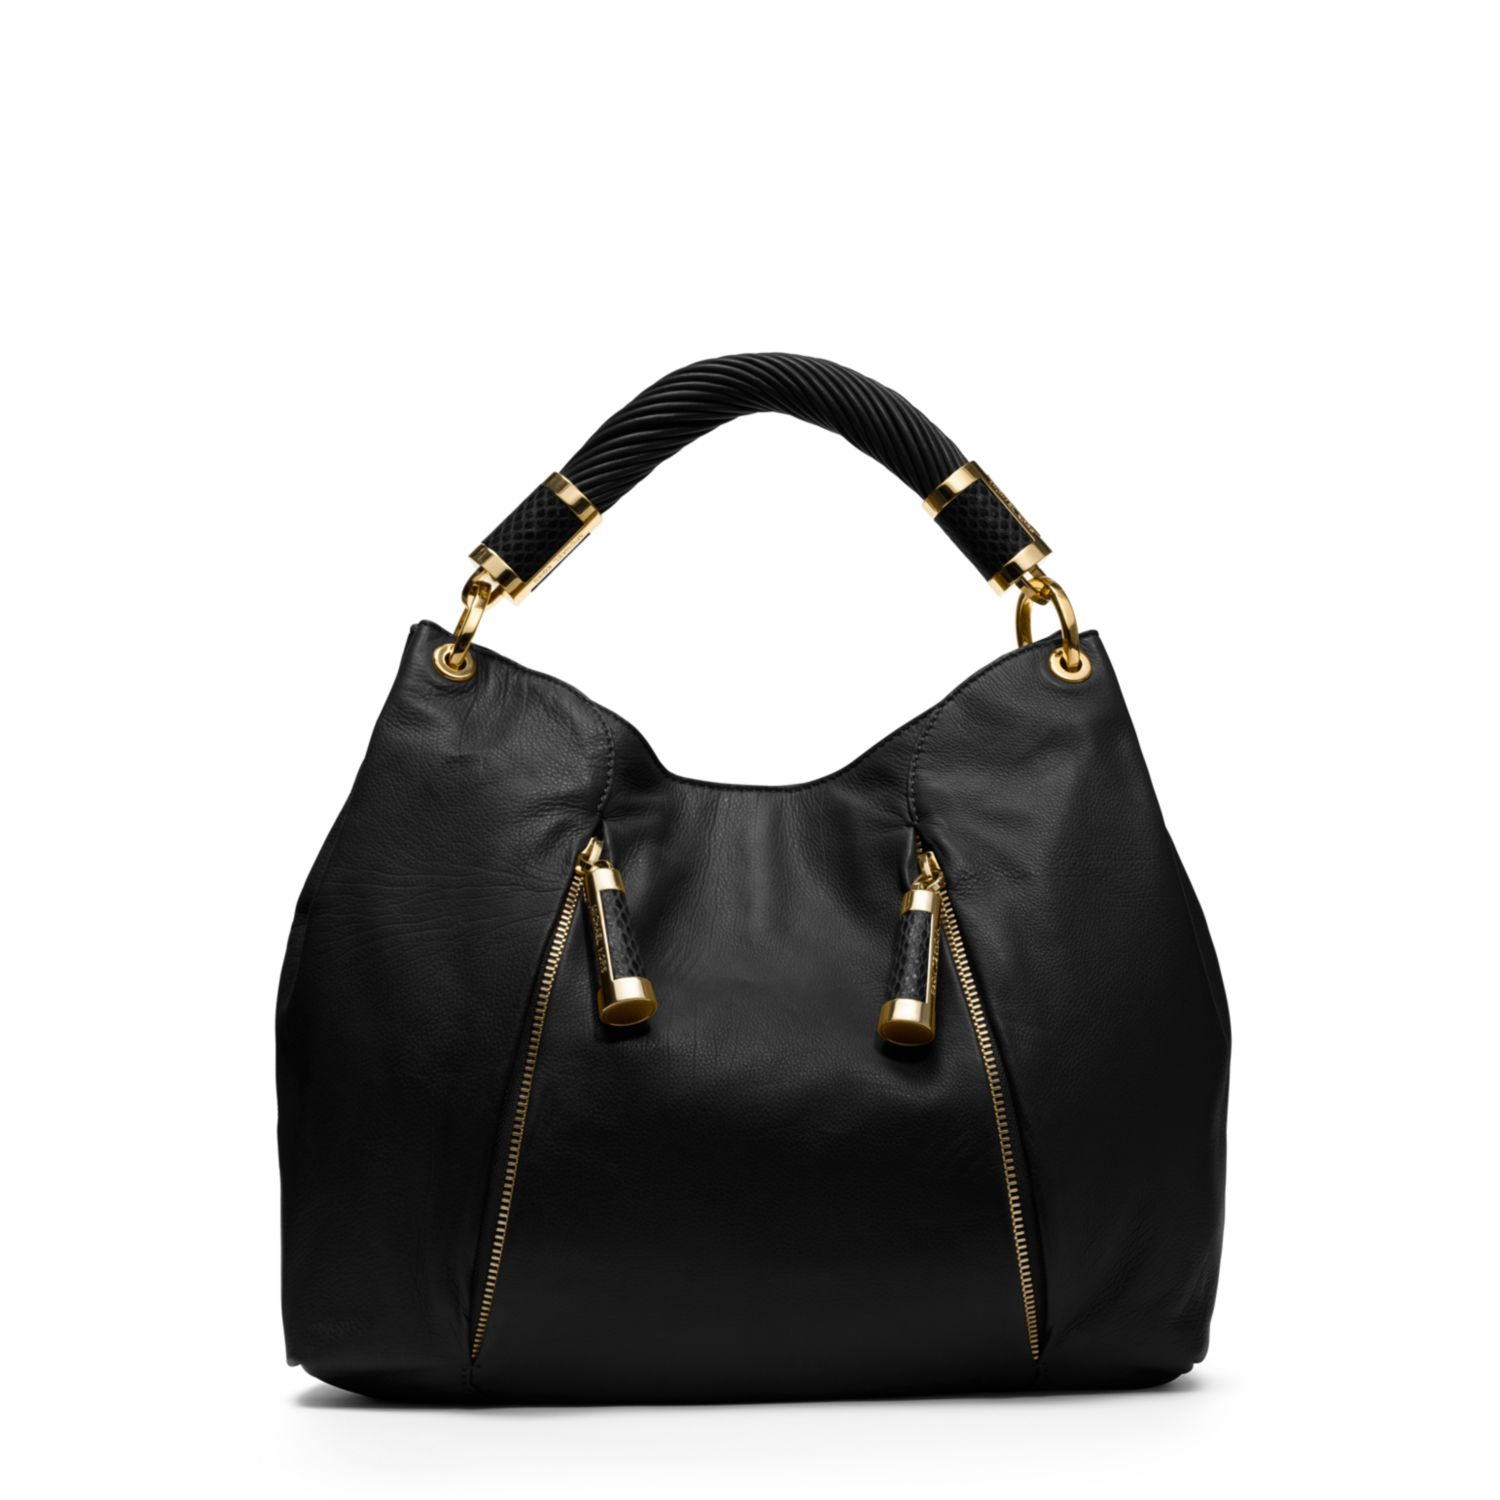 michael kors tonne leather hobo bag in black lyst. Black Bedroom Furniture Sets. Home Design Ideas